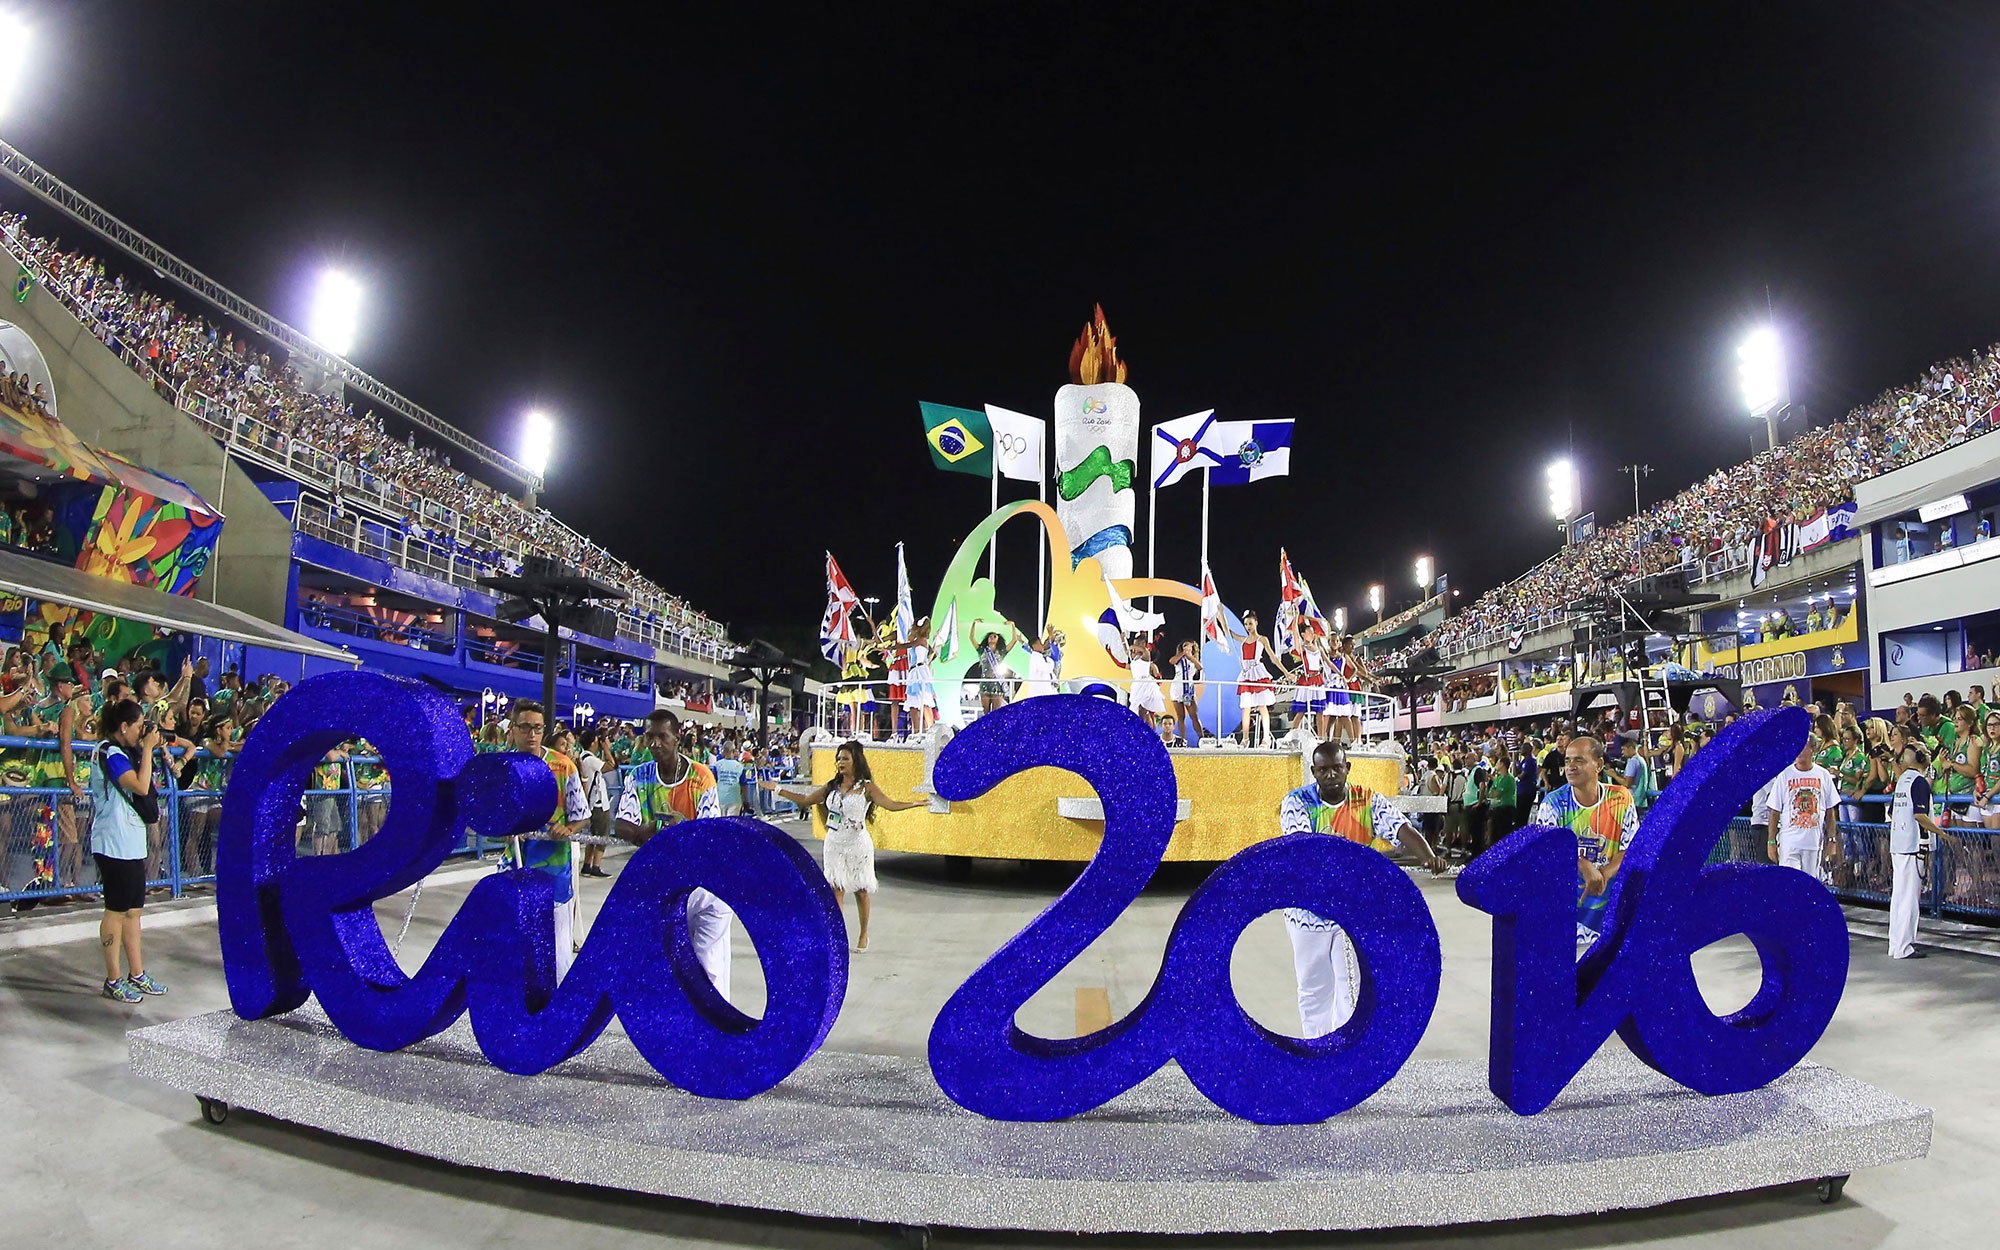 How to Attend the 2016 Olympics